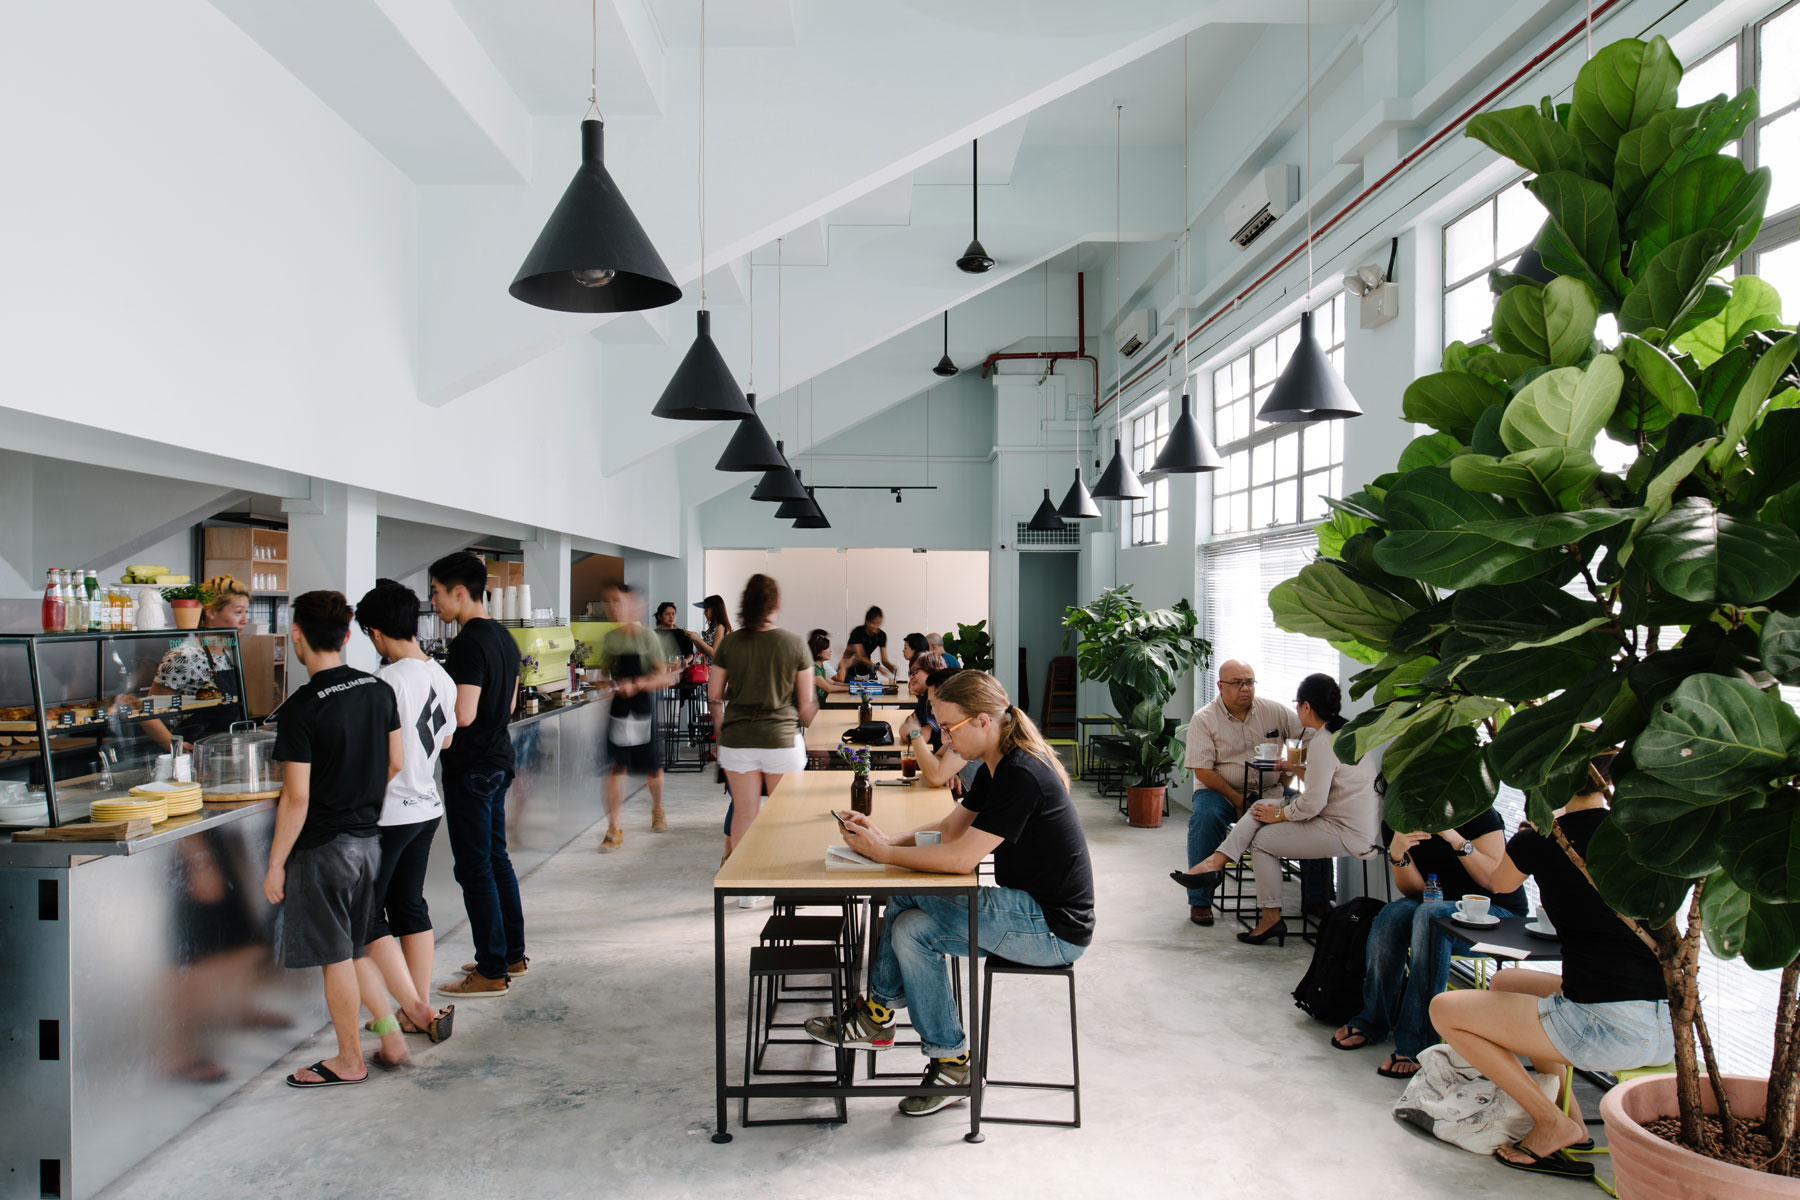 Brawn & Brains - This raw, light-filled space gives you a good indication of where Singapore's coffee scene is headed. Having moved into this space, the cafe has given as much focus to its well-made, hearty food as it does to its ever excellent coffee. This versatile venue is somewhat Australian in style, making it the kind of place we're equally happy to choose for a leisurely breakfast, working lunch or coffee meeting.#01-02, 100 Guillemard Road